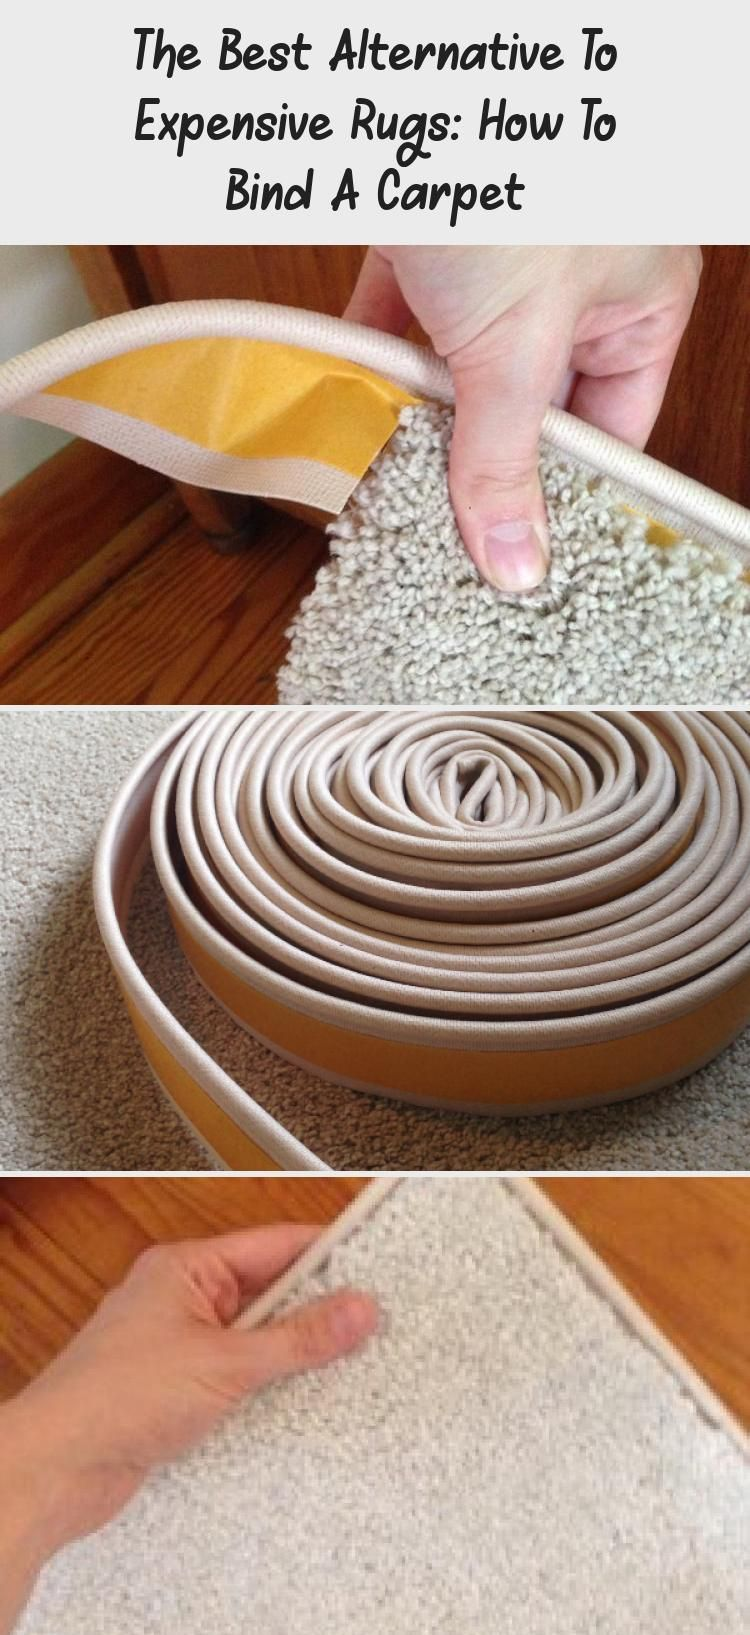 The Best Alternative to Expensive Carpets Binding a